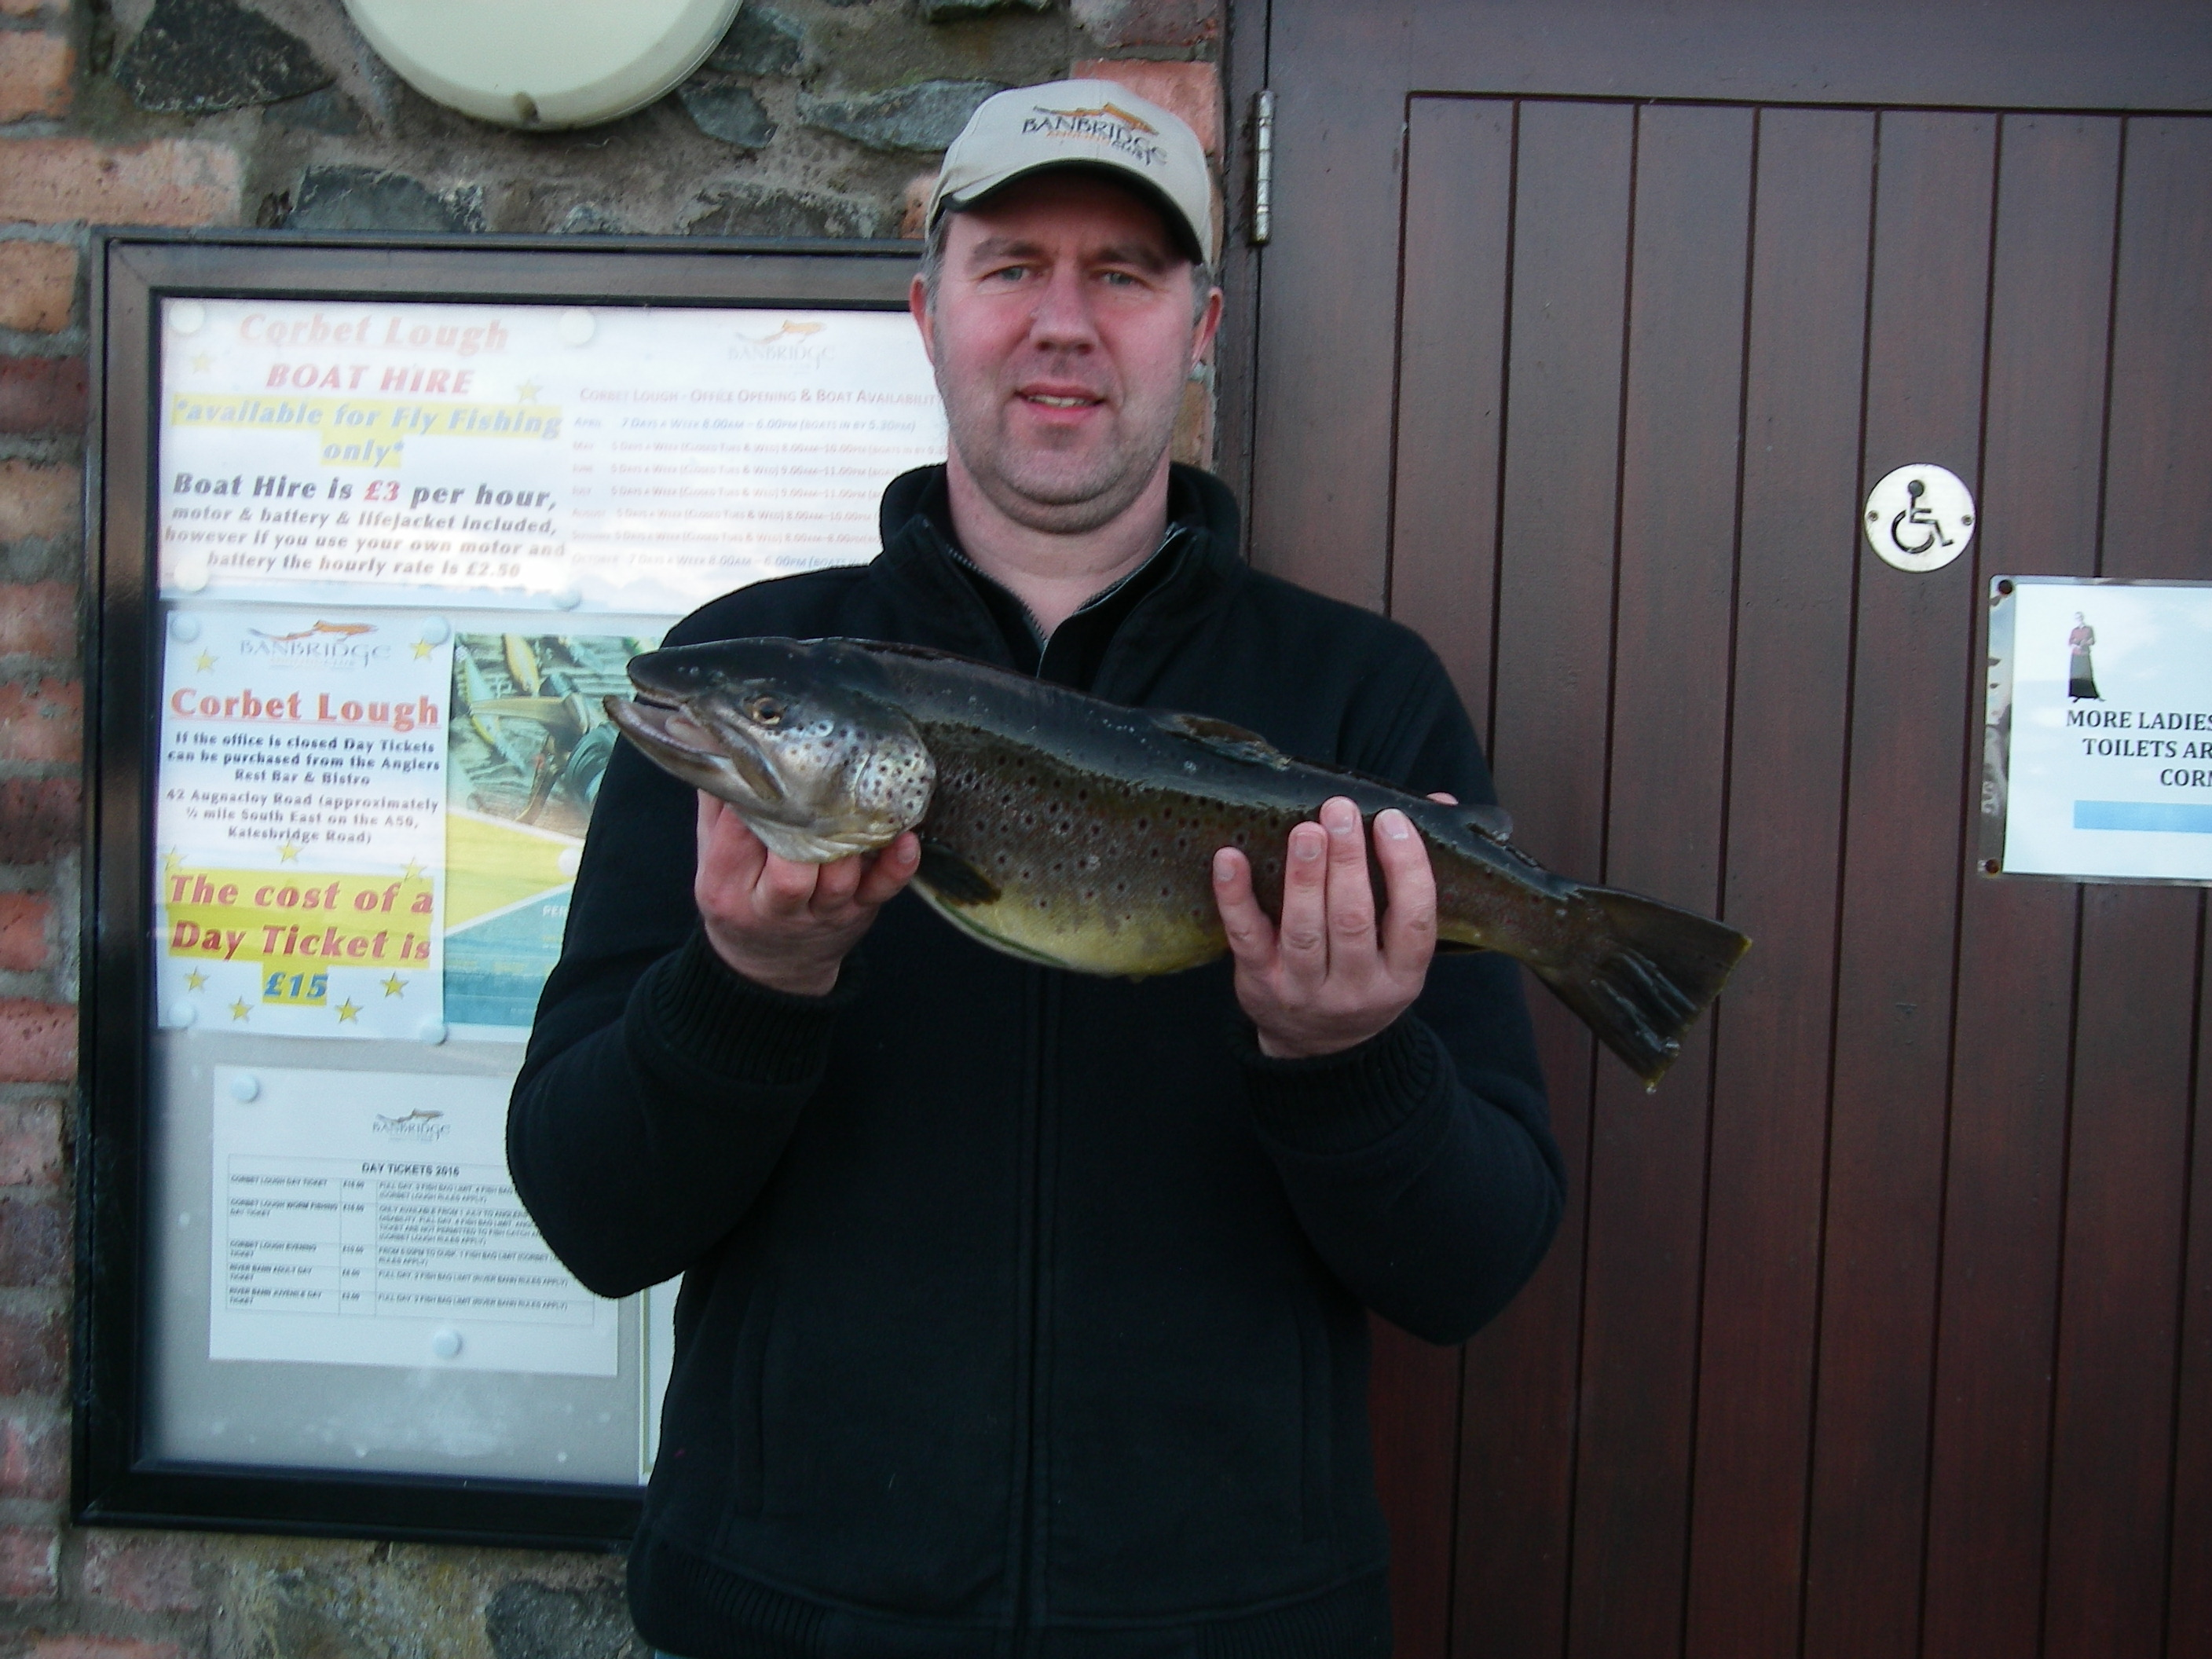 BAC Bobby Blakley Cup 4 March 2017 - Roger McClements winner with Brown Trout 5lbs 8ozs taken on the fly